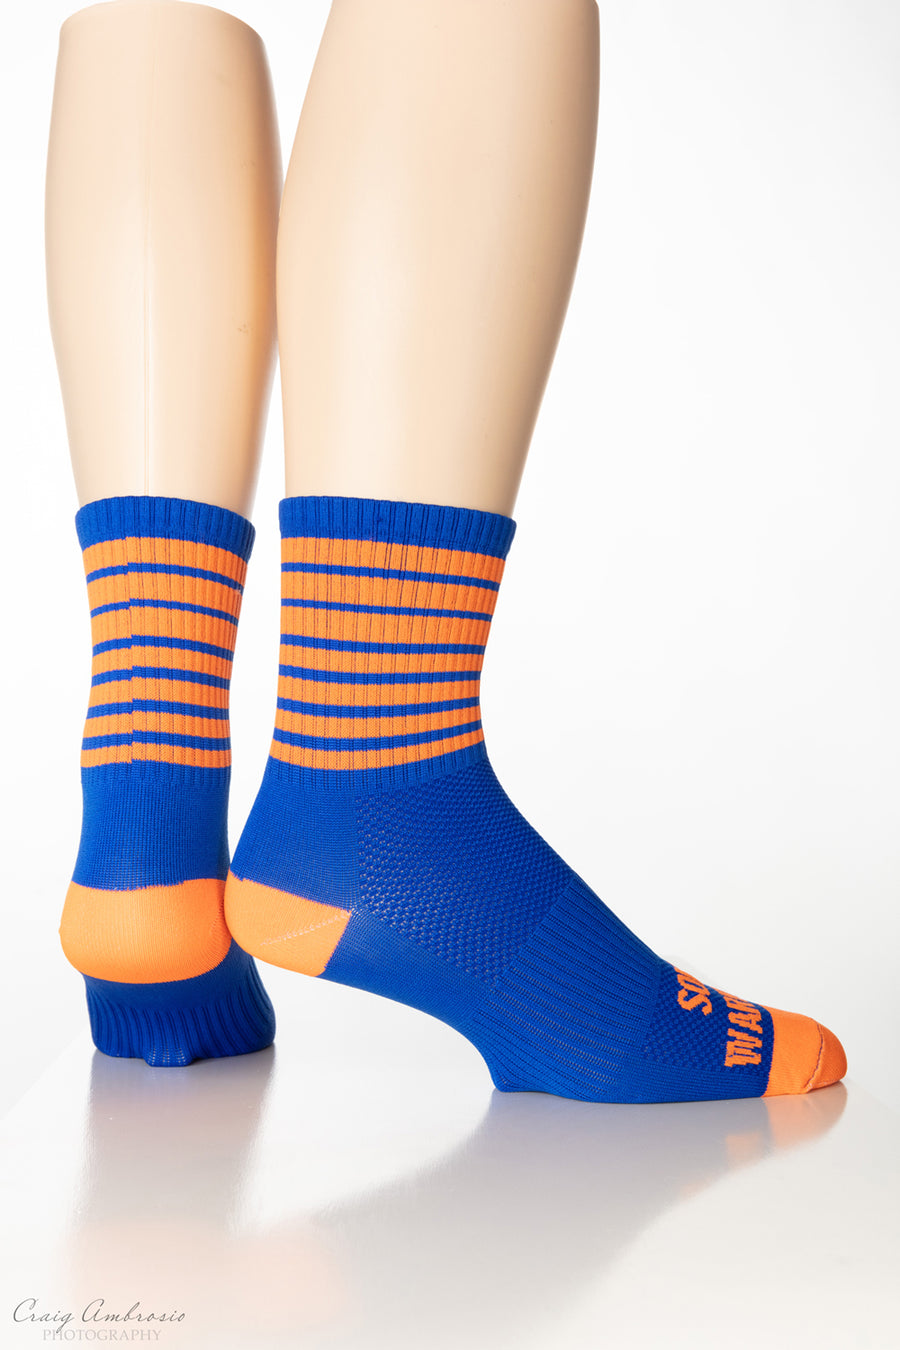 STRIPES Men's and Women's Compression Cycling socks